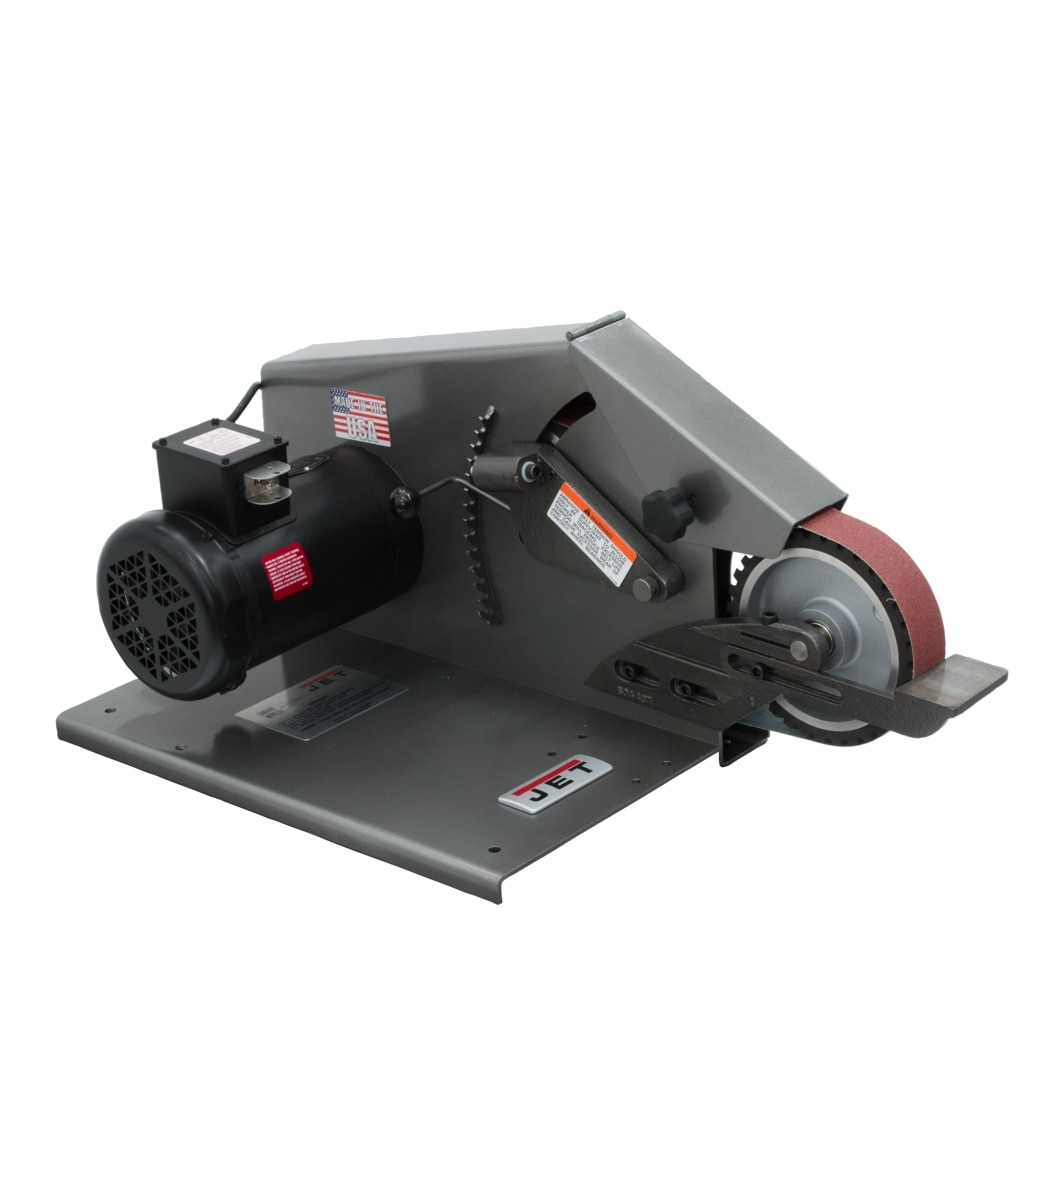 J-4103 2 x 72 Square Wheel Belt Grinder 115V 1Ph